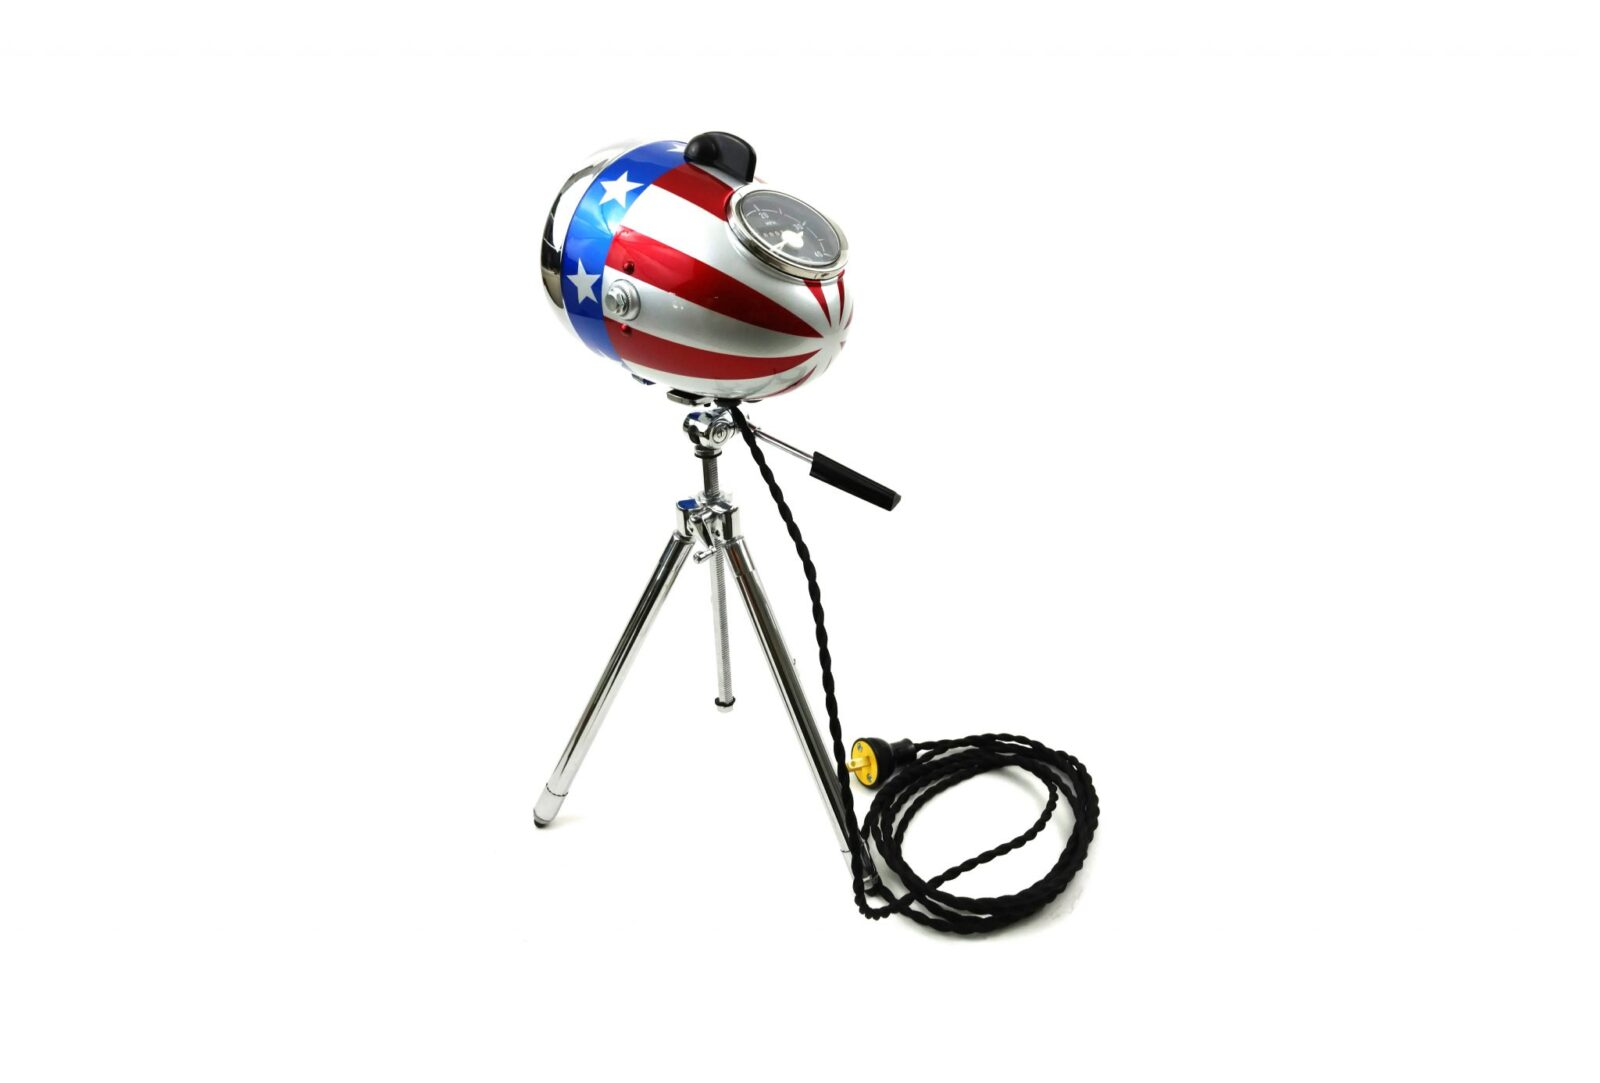 Easy Rider Lamp Hero 1600x1083 - Captain America Lamp by The Modern Weld